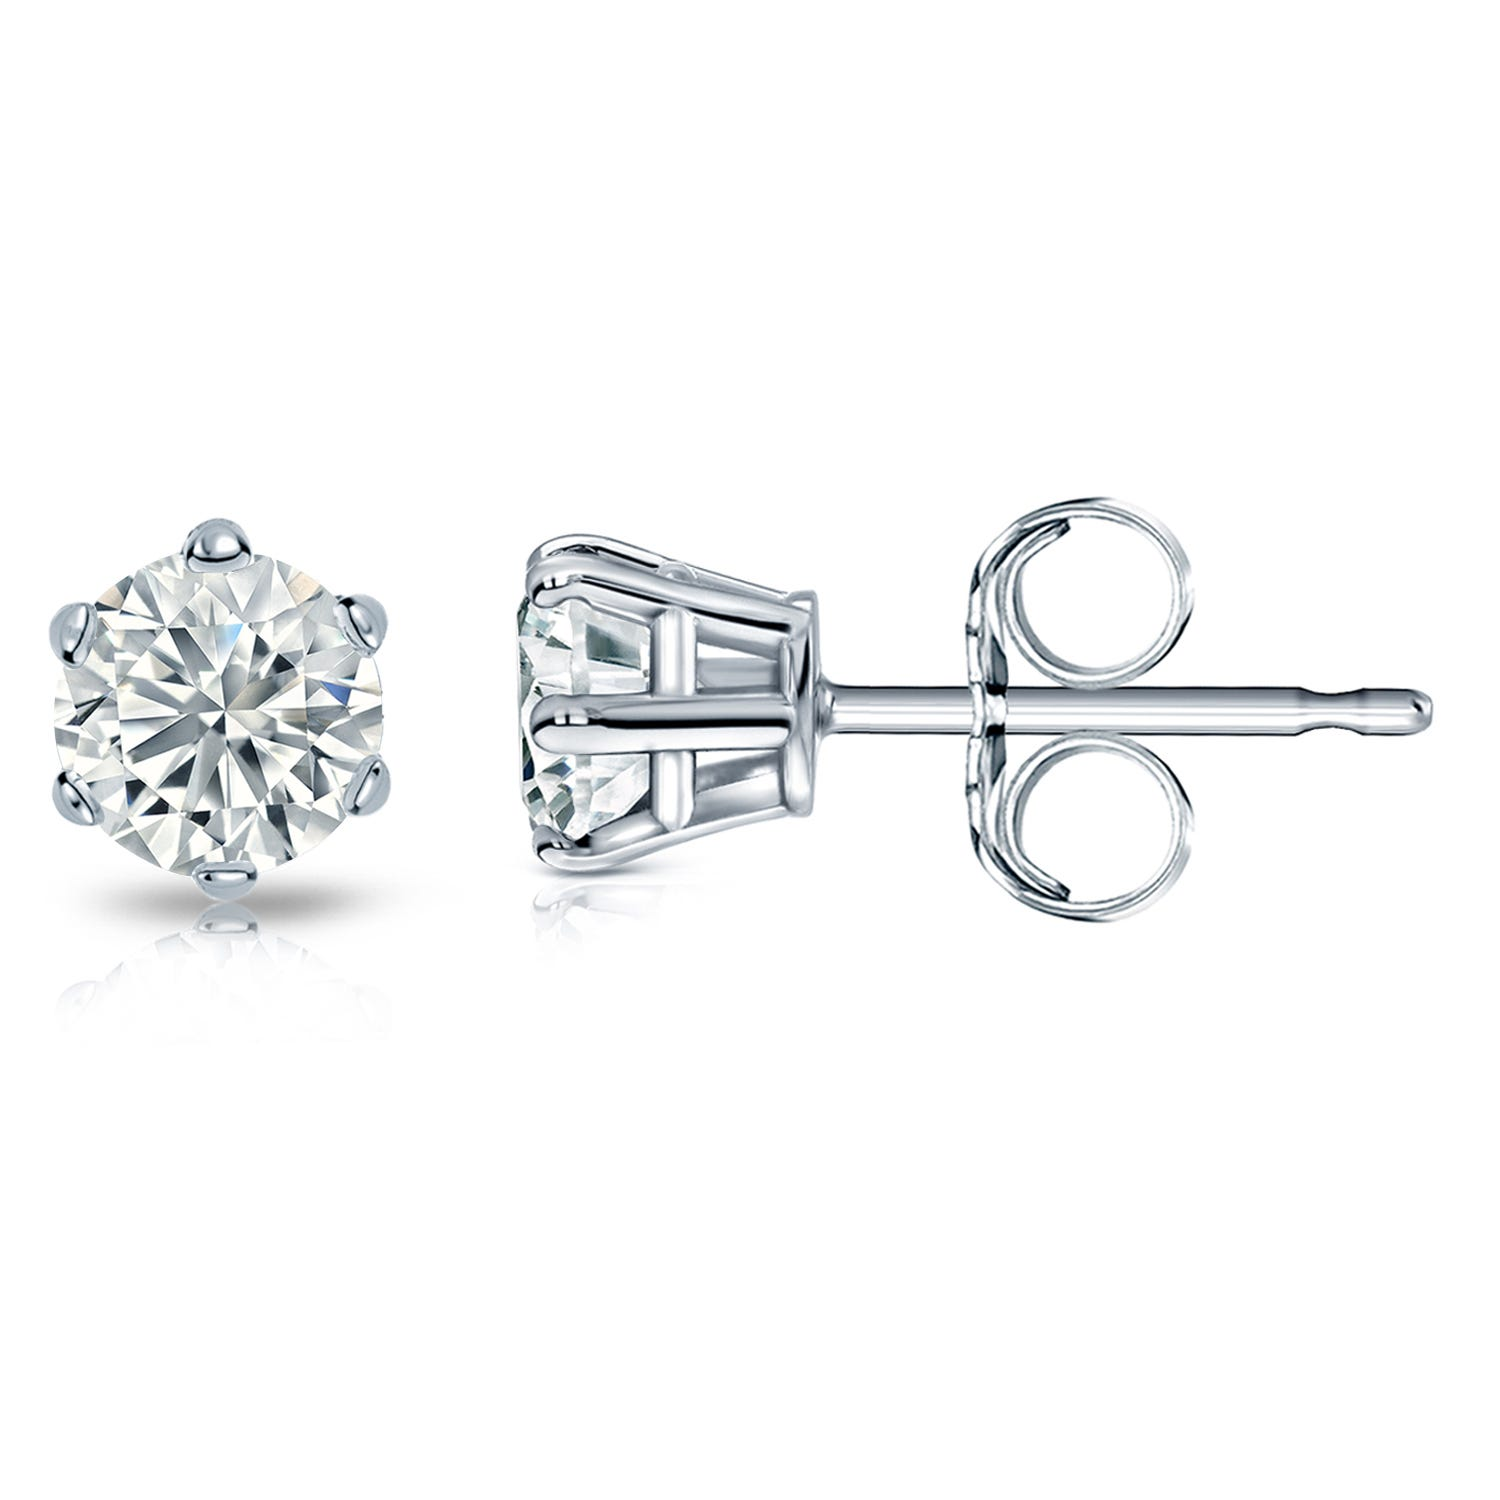 Round Diamond 1ctw. (IJ-SI2) Solitaire Stud 6-Prong Earrings in 14K White Gold